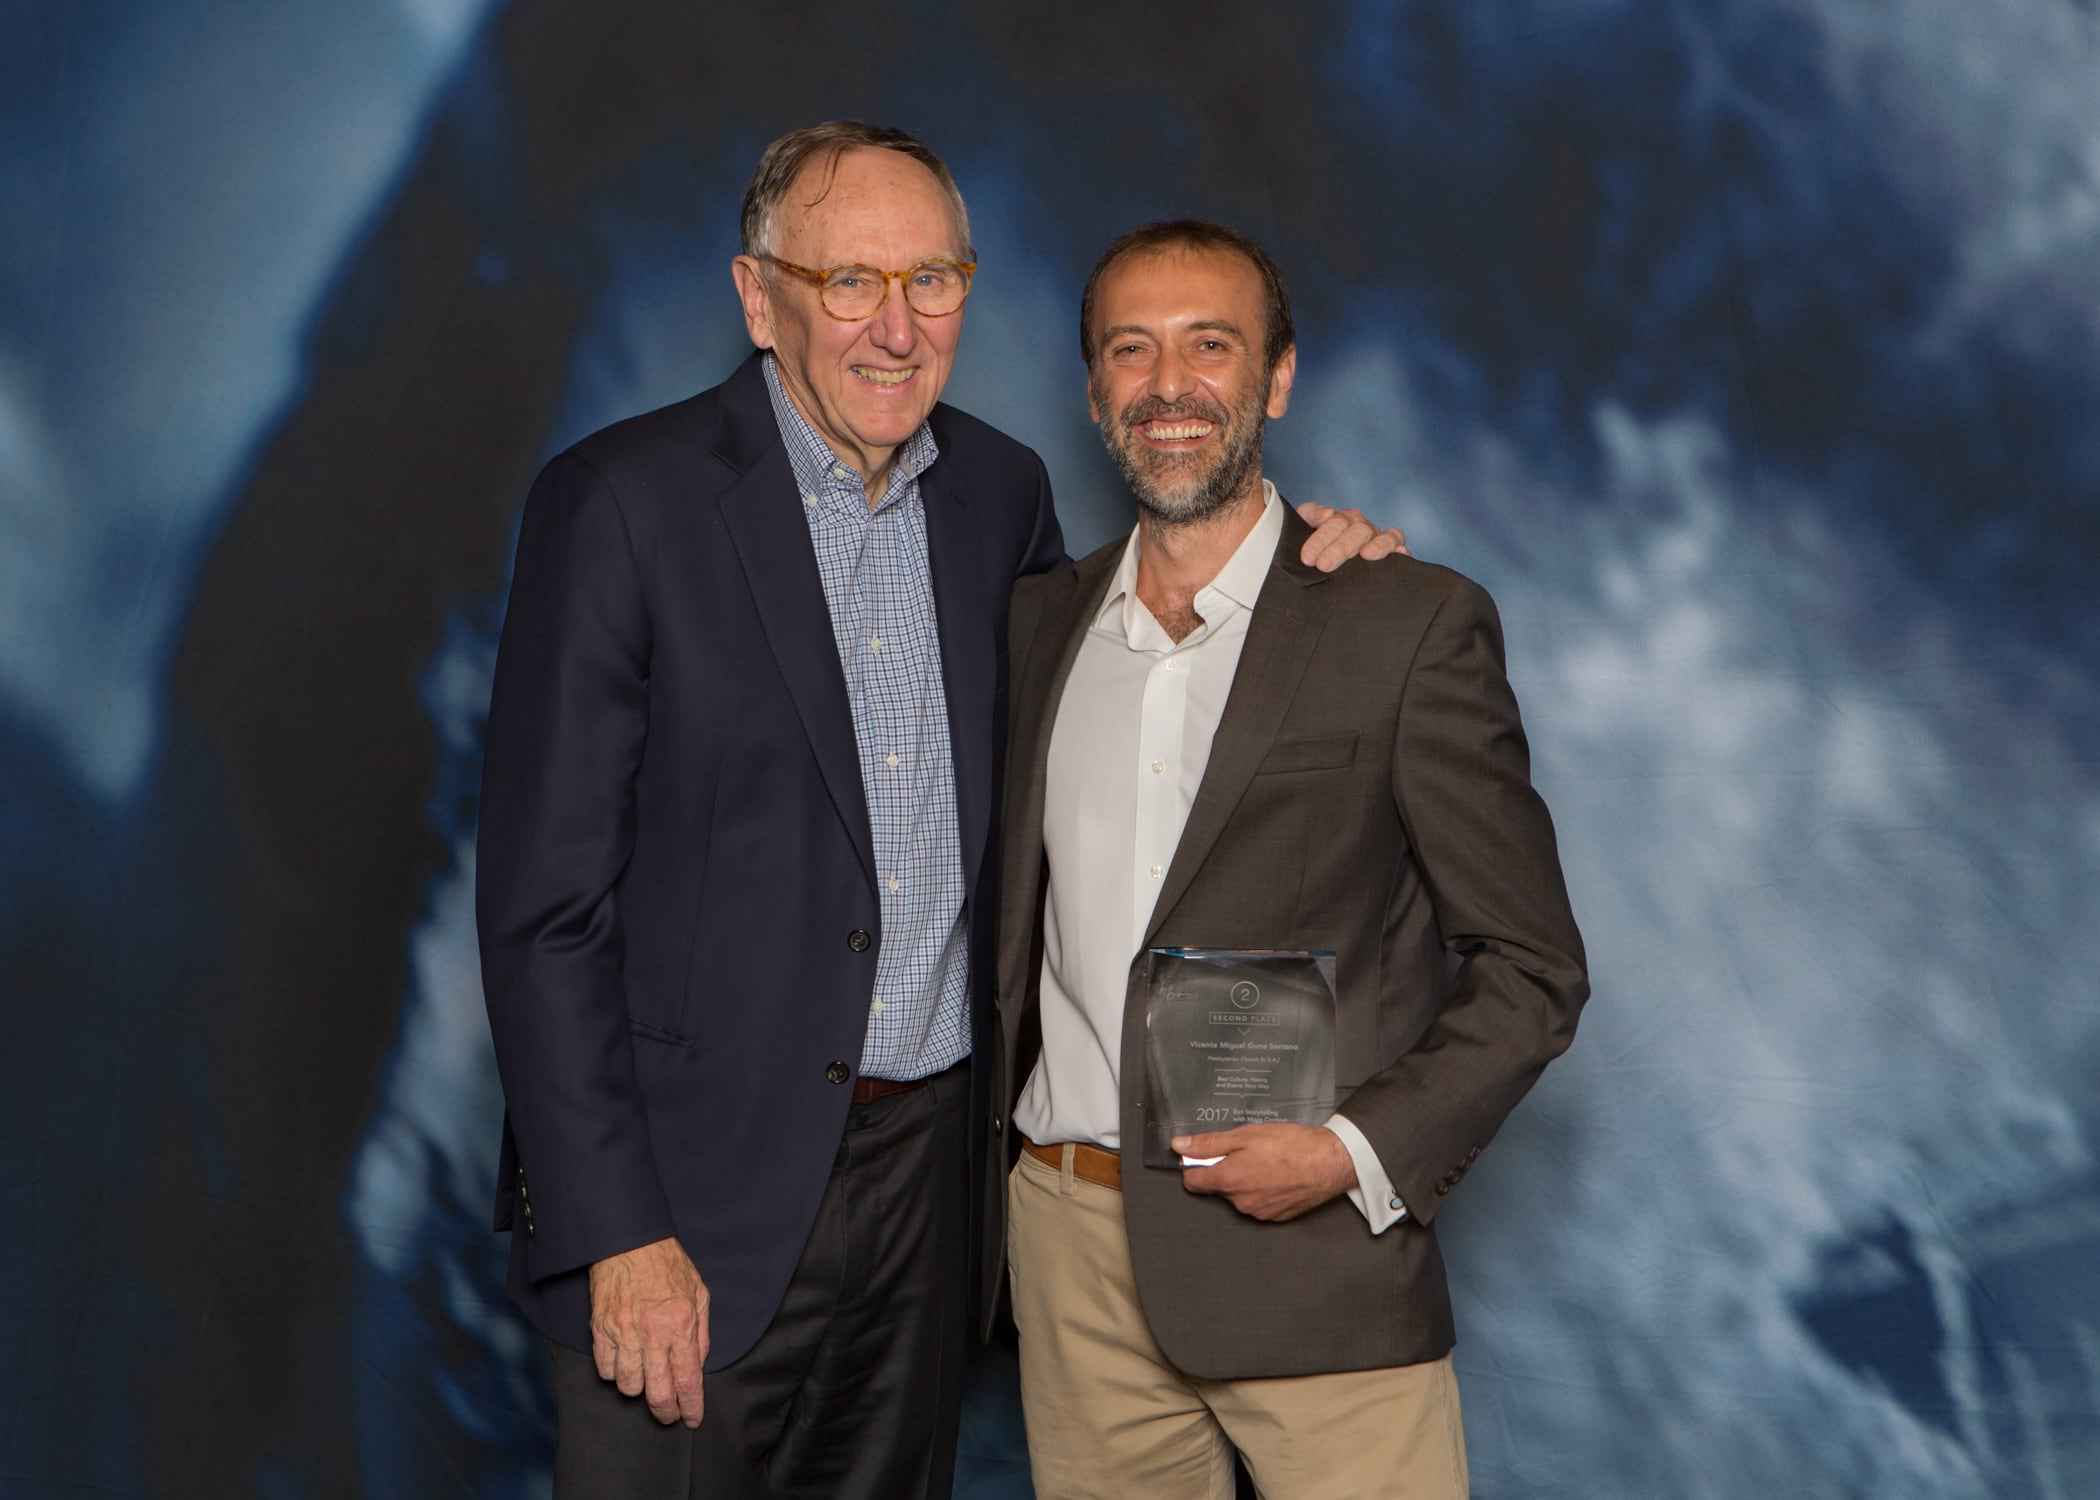 Esri CEO Jack Dangermond and Storytelling with Maps contest winner Vicente Serrano